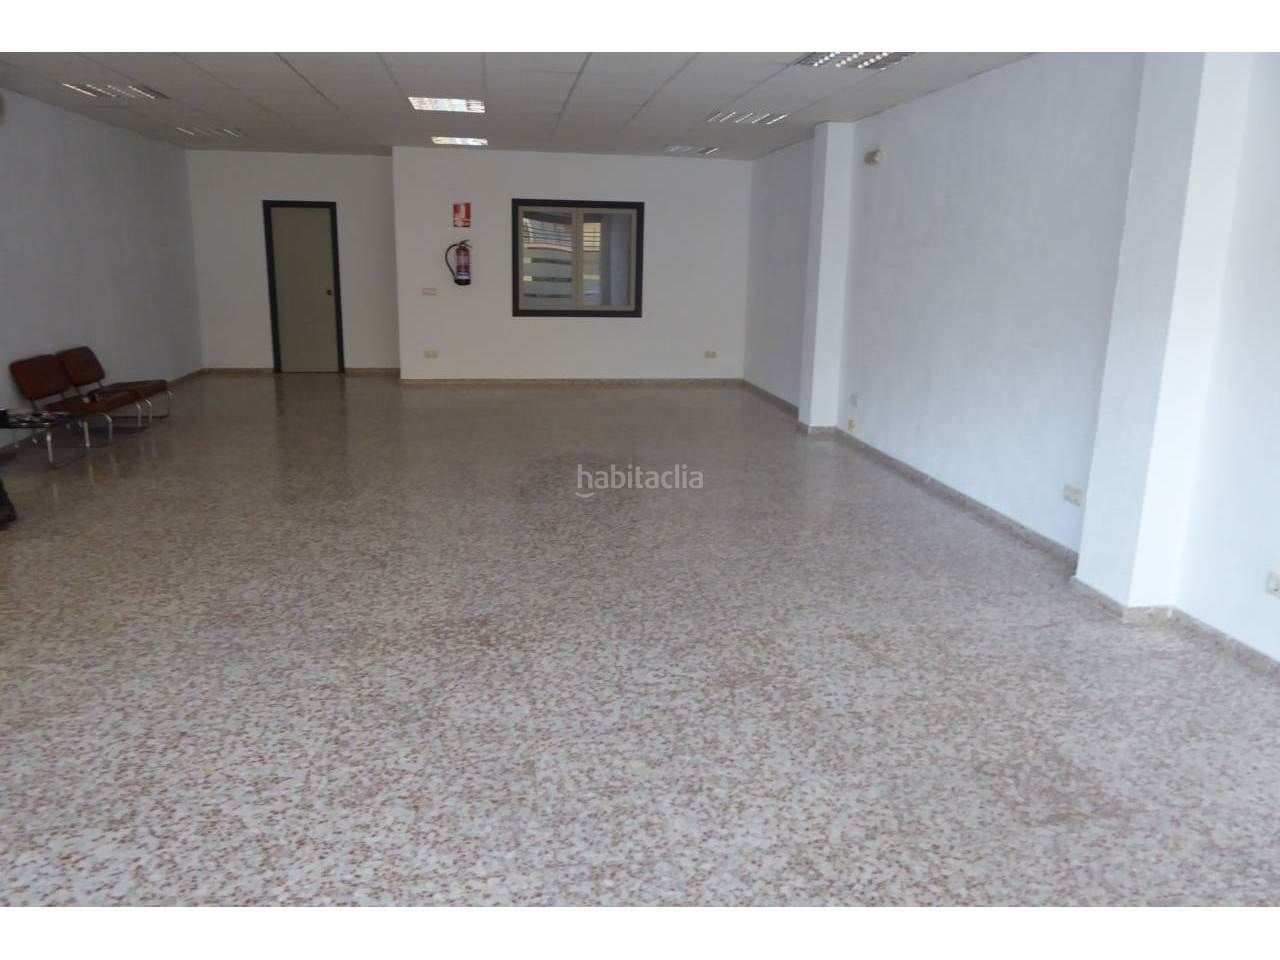 Local Comercial en Costa Sur. Local comercial en venta